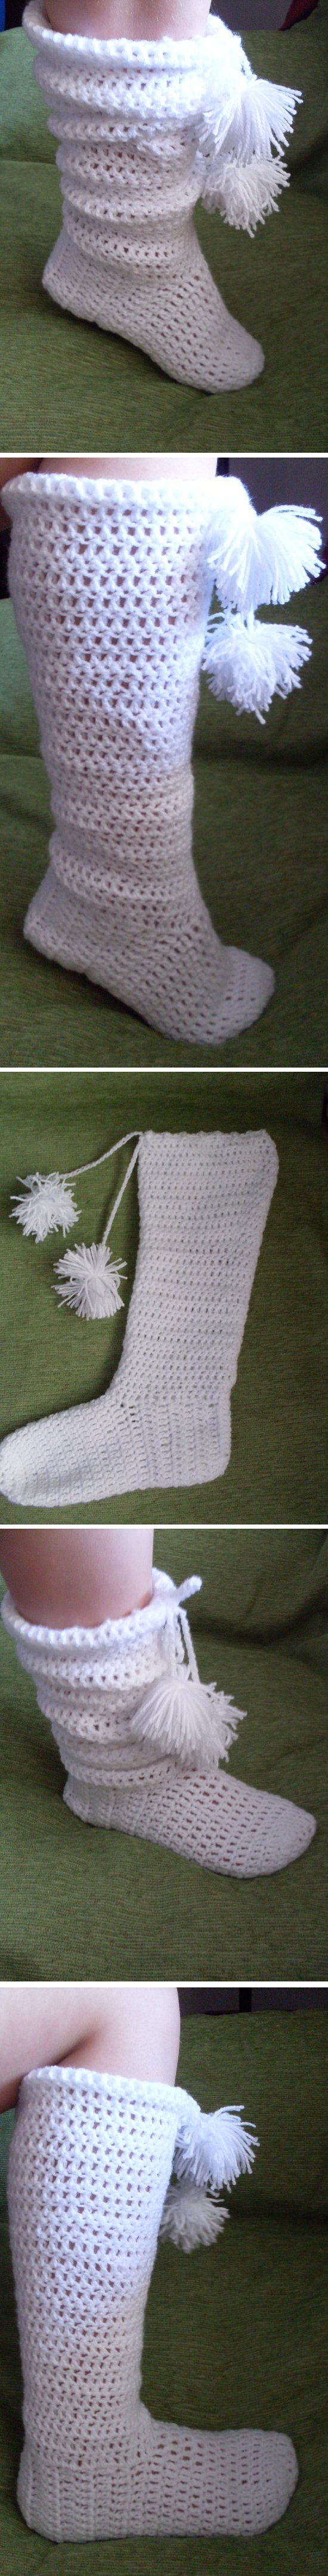 Slipper Boots to crochet - *Inspiration*